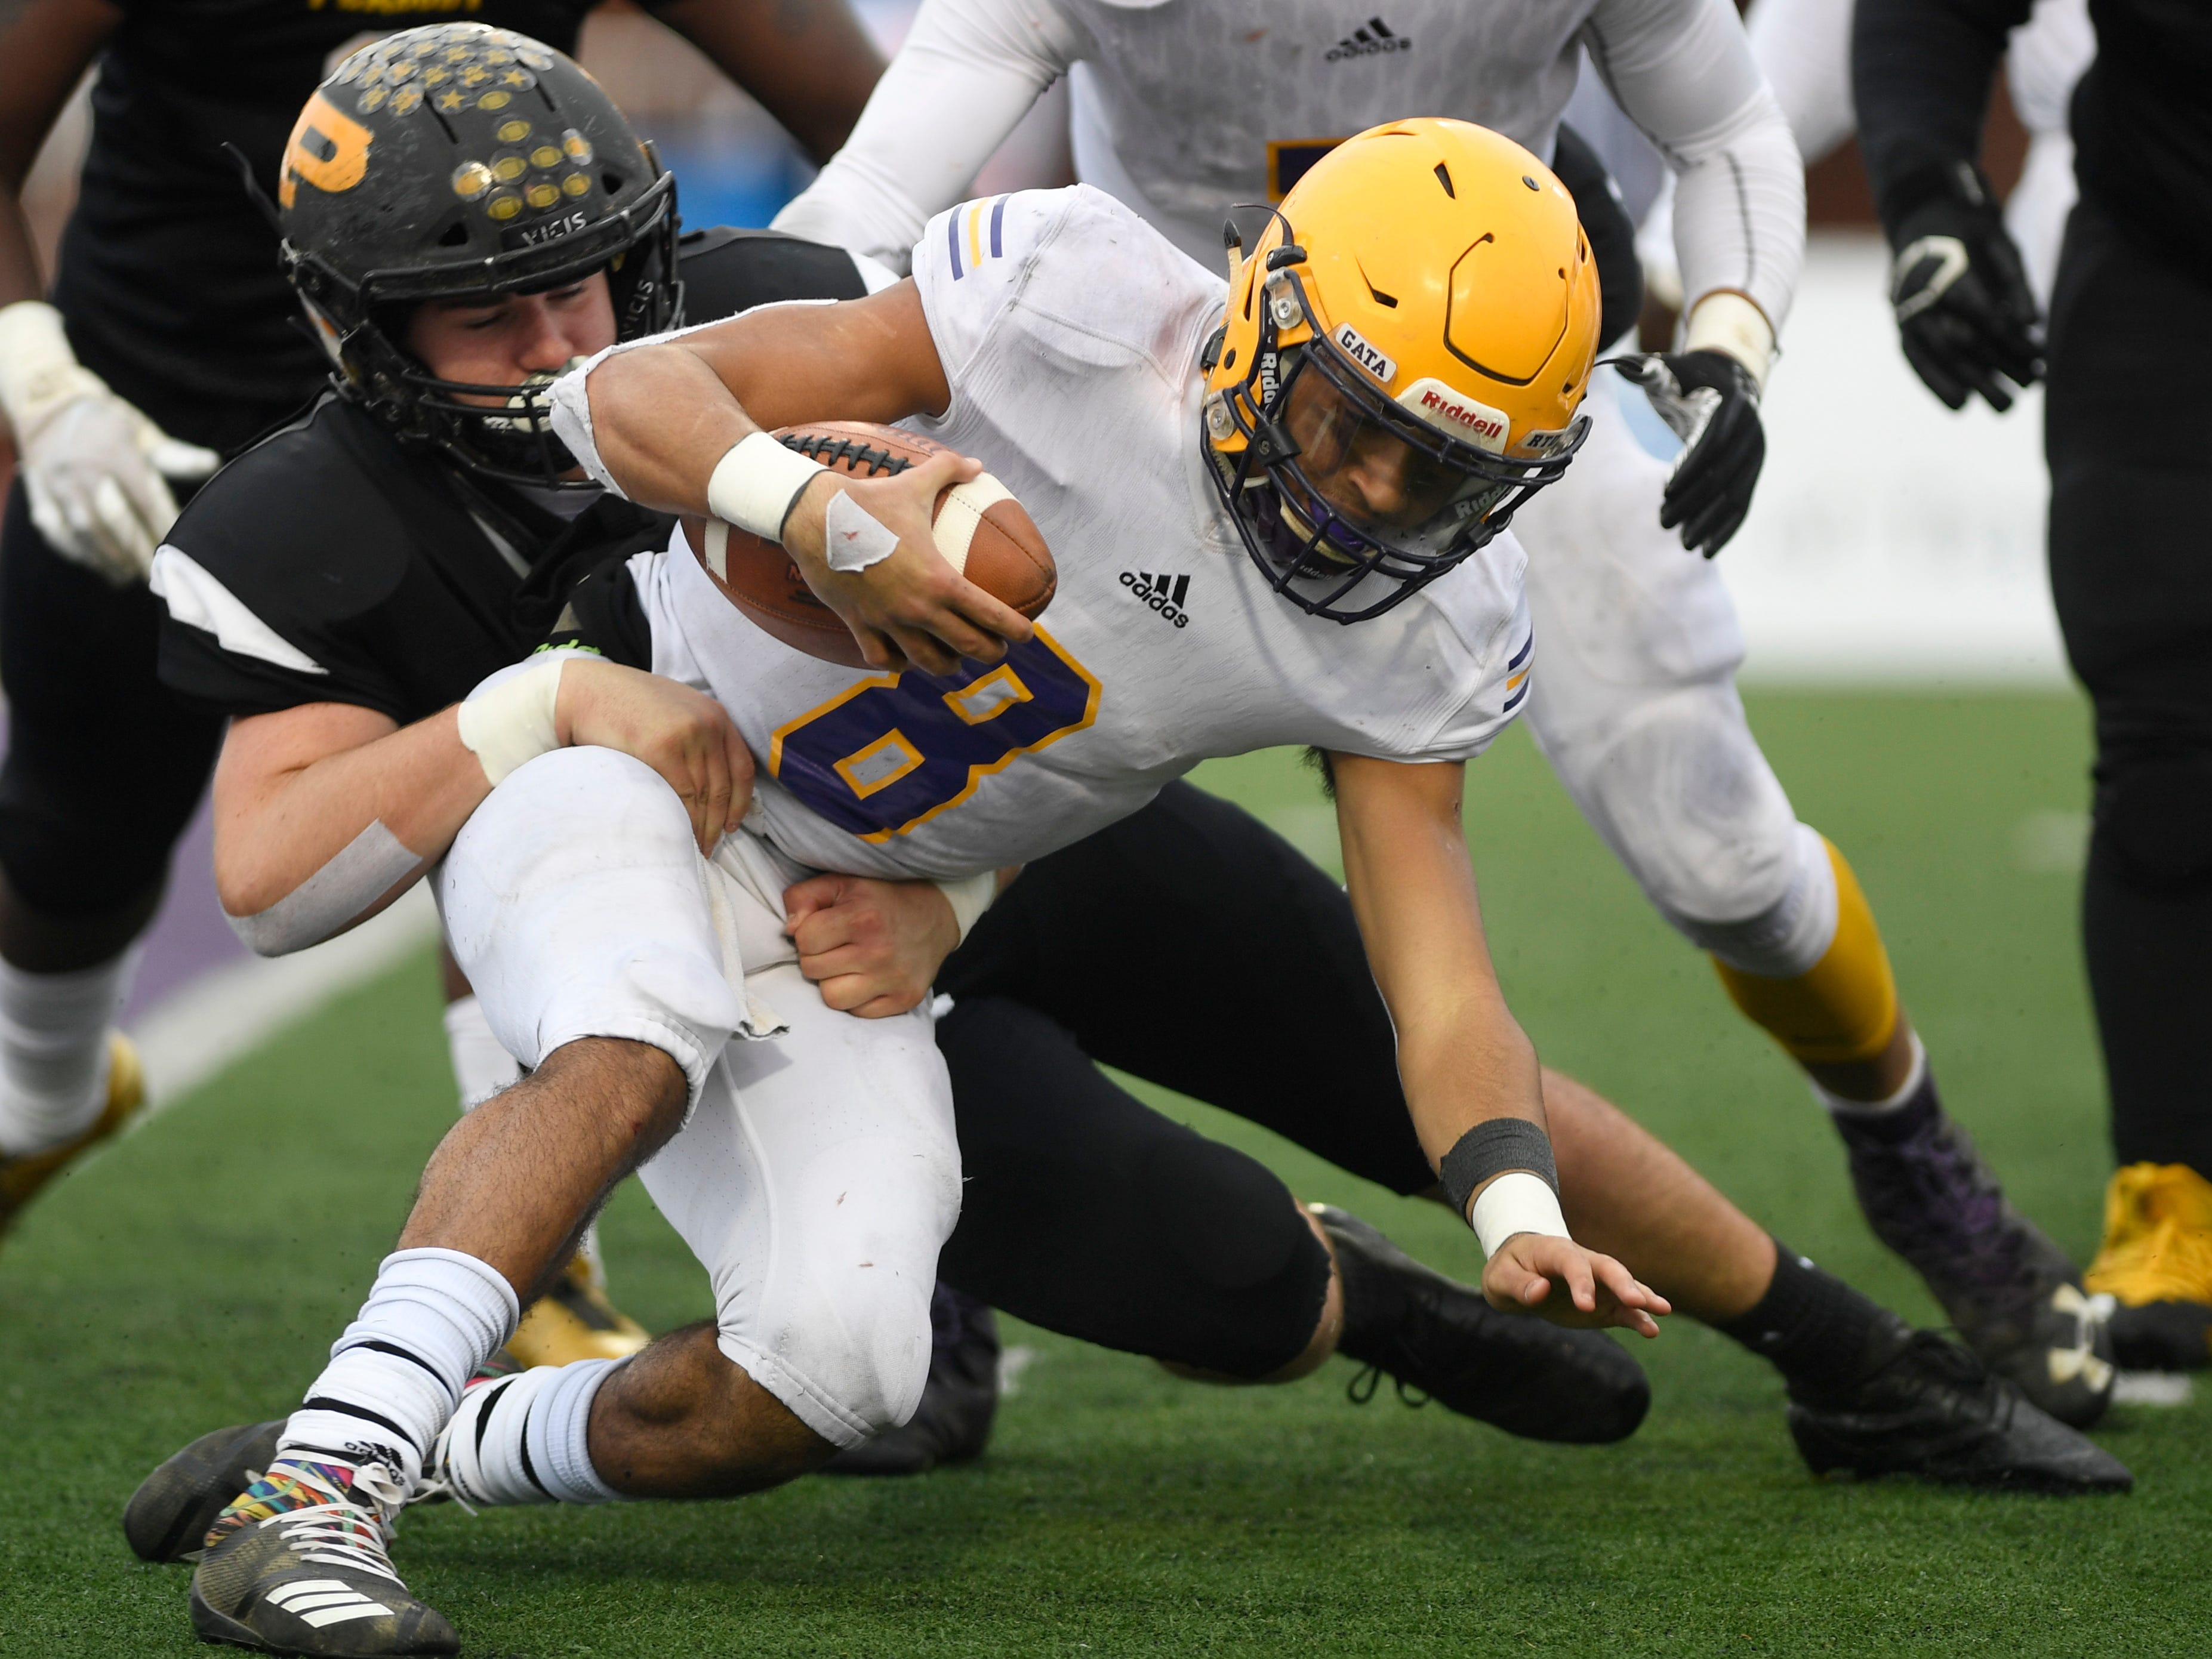 Trousdale's Keyvont Baines (8) is brought down by a Peabody defender in the third quarter during the Class 2A BlueCross Bowl state championship at Tennessee Tech's Tucker Stadium in Cookeville, Tenn., on Thursday, Nov. 29, 2018.